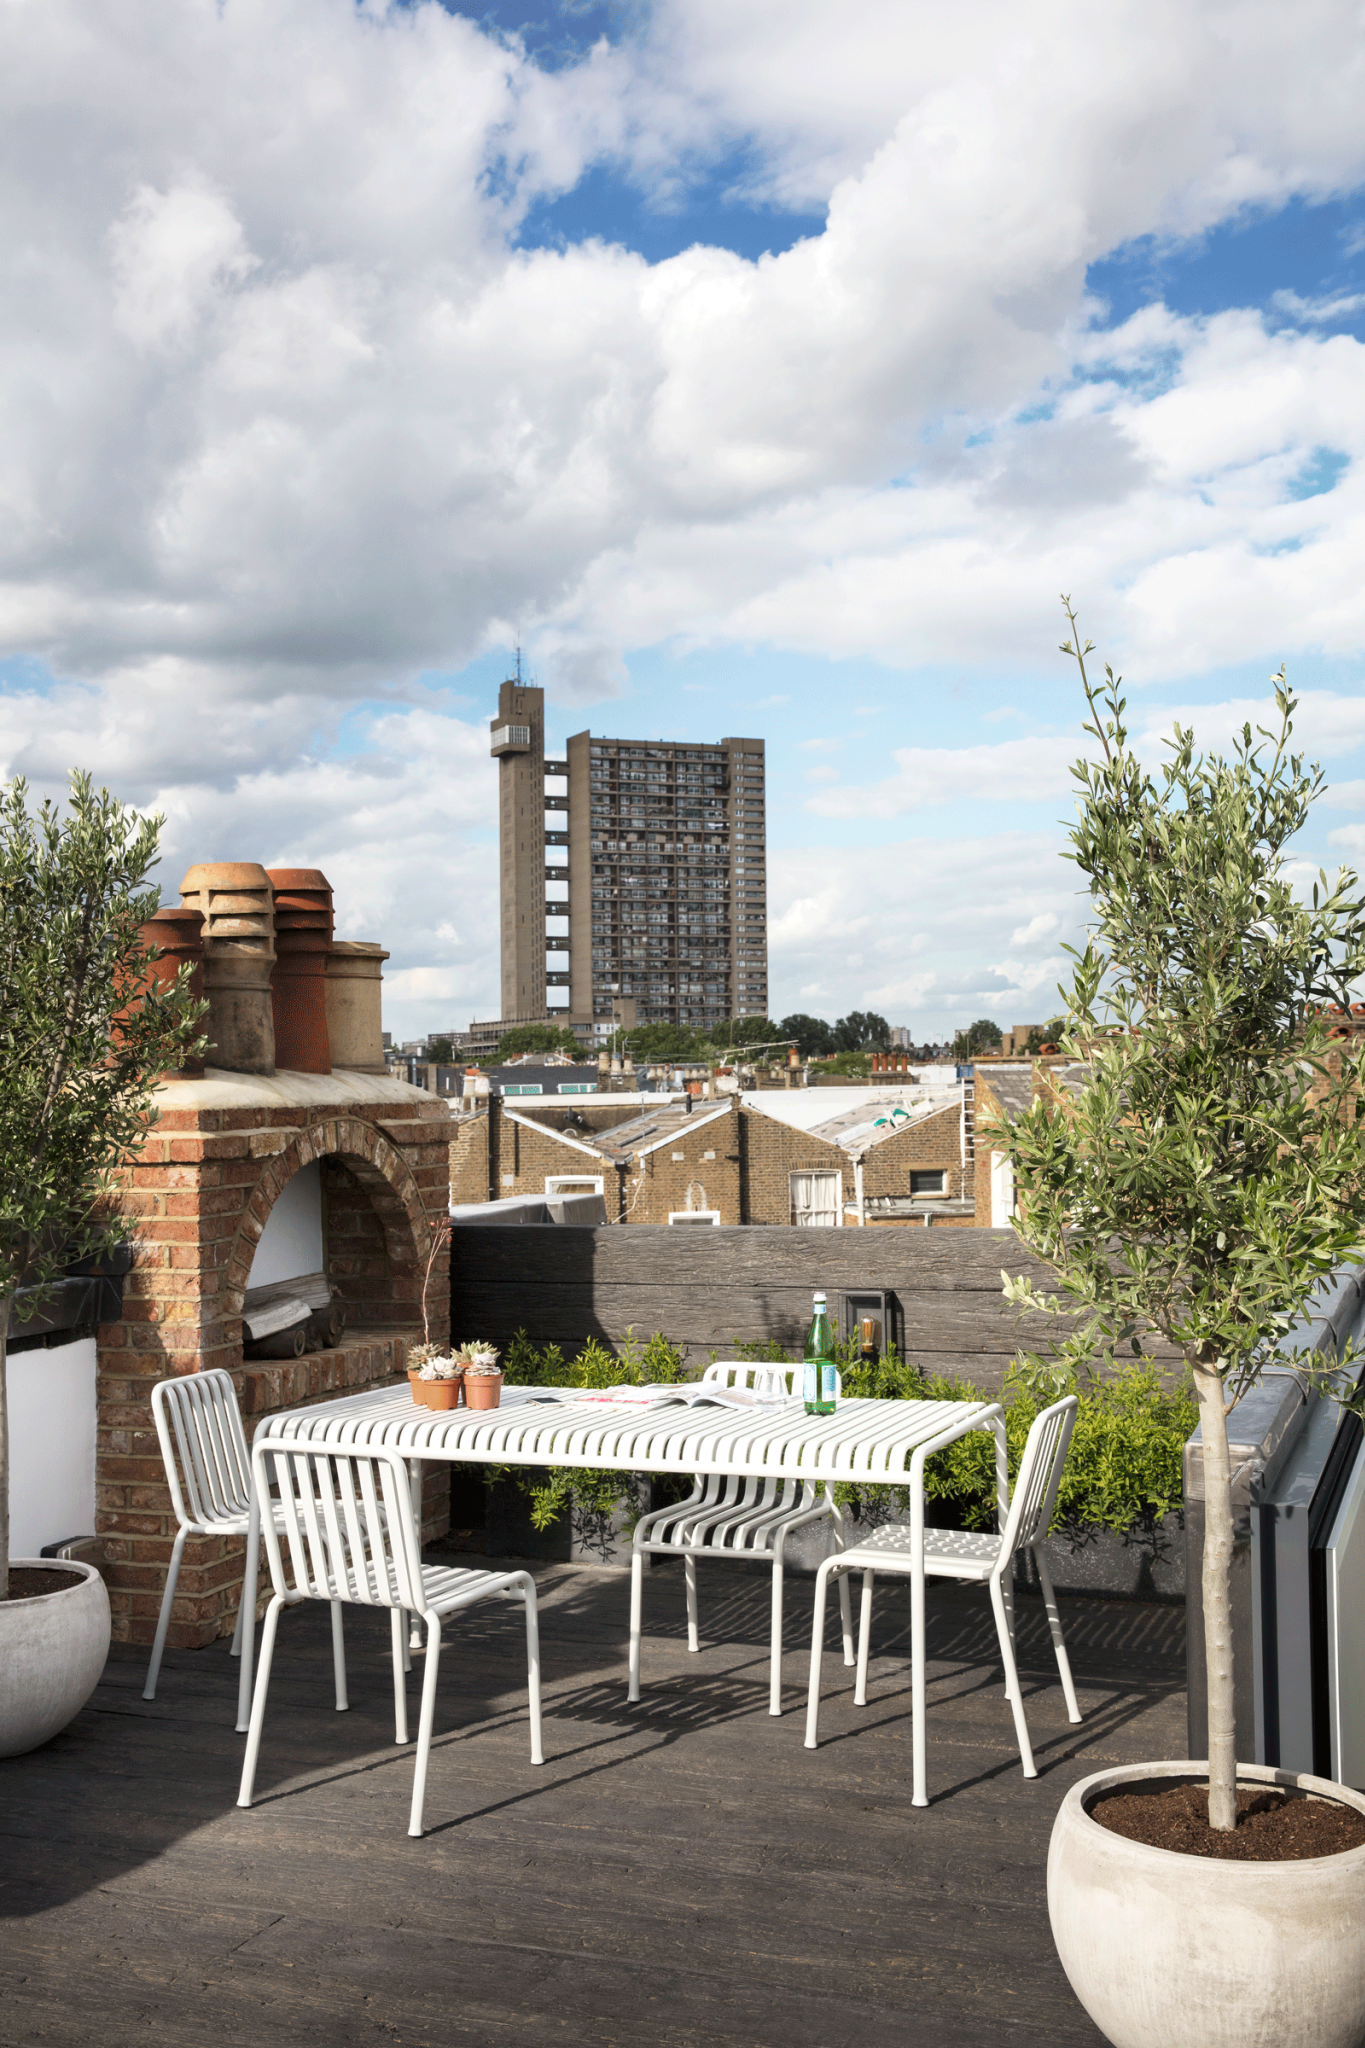 Roof garden ideas: 21 fun and stylish ideas to make the most of your rooftop garden